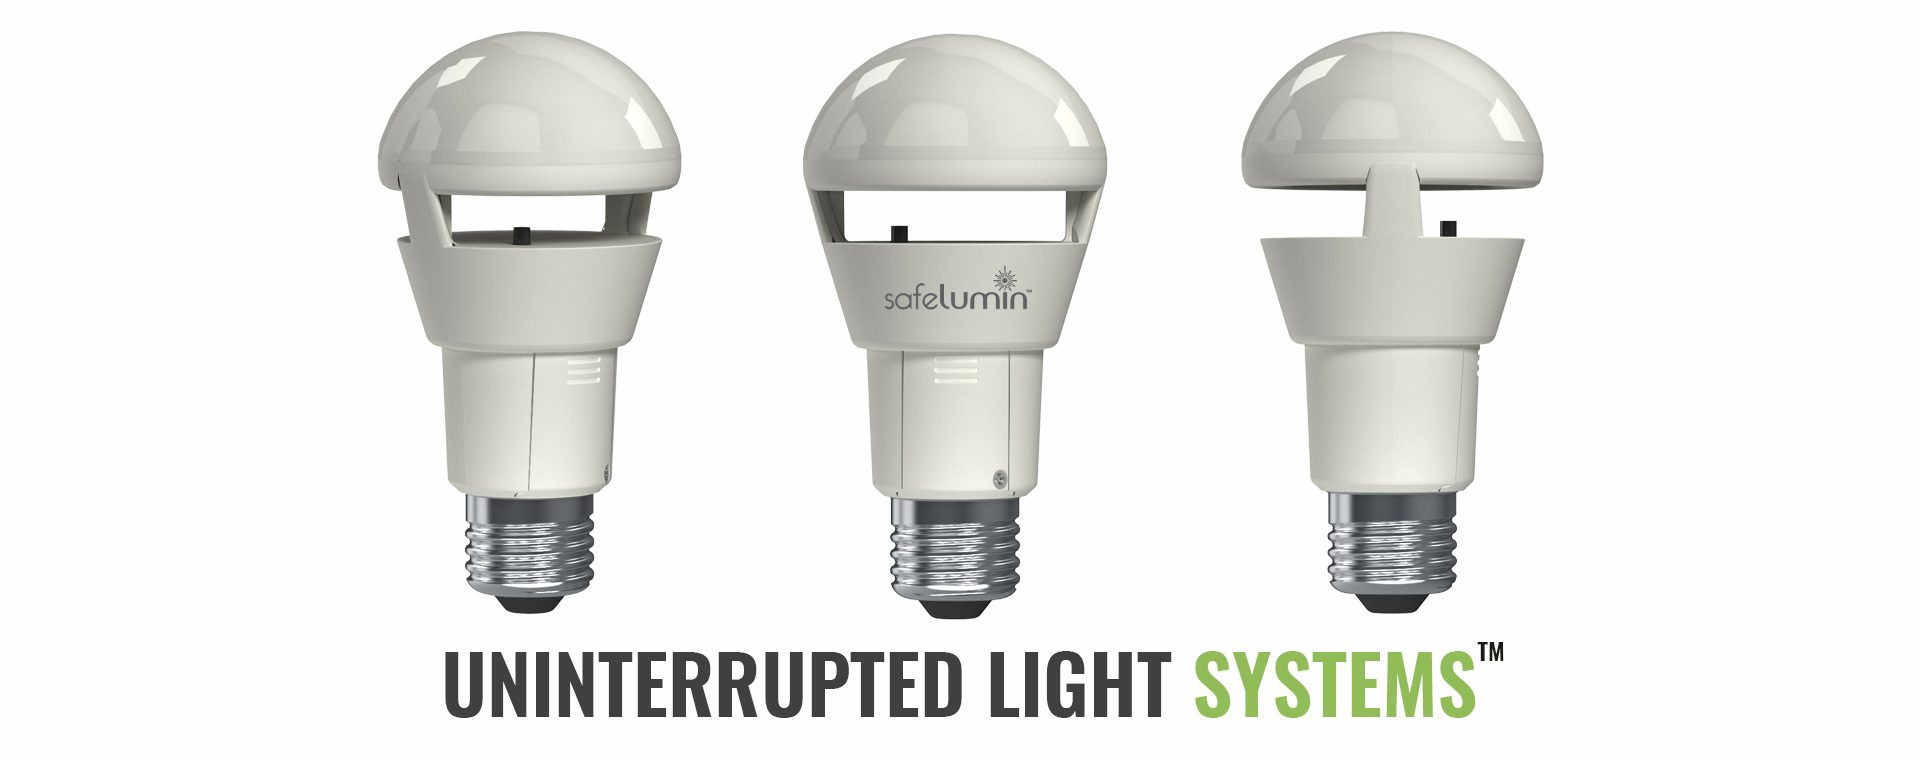 sc 1 th 141 & The Best LED Emergency Light Bulbs for Power Outage or Power Failure! azcodes.com